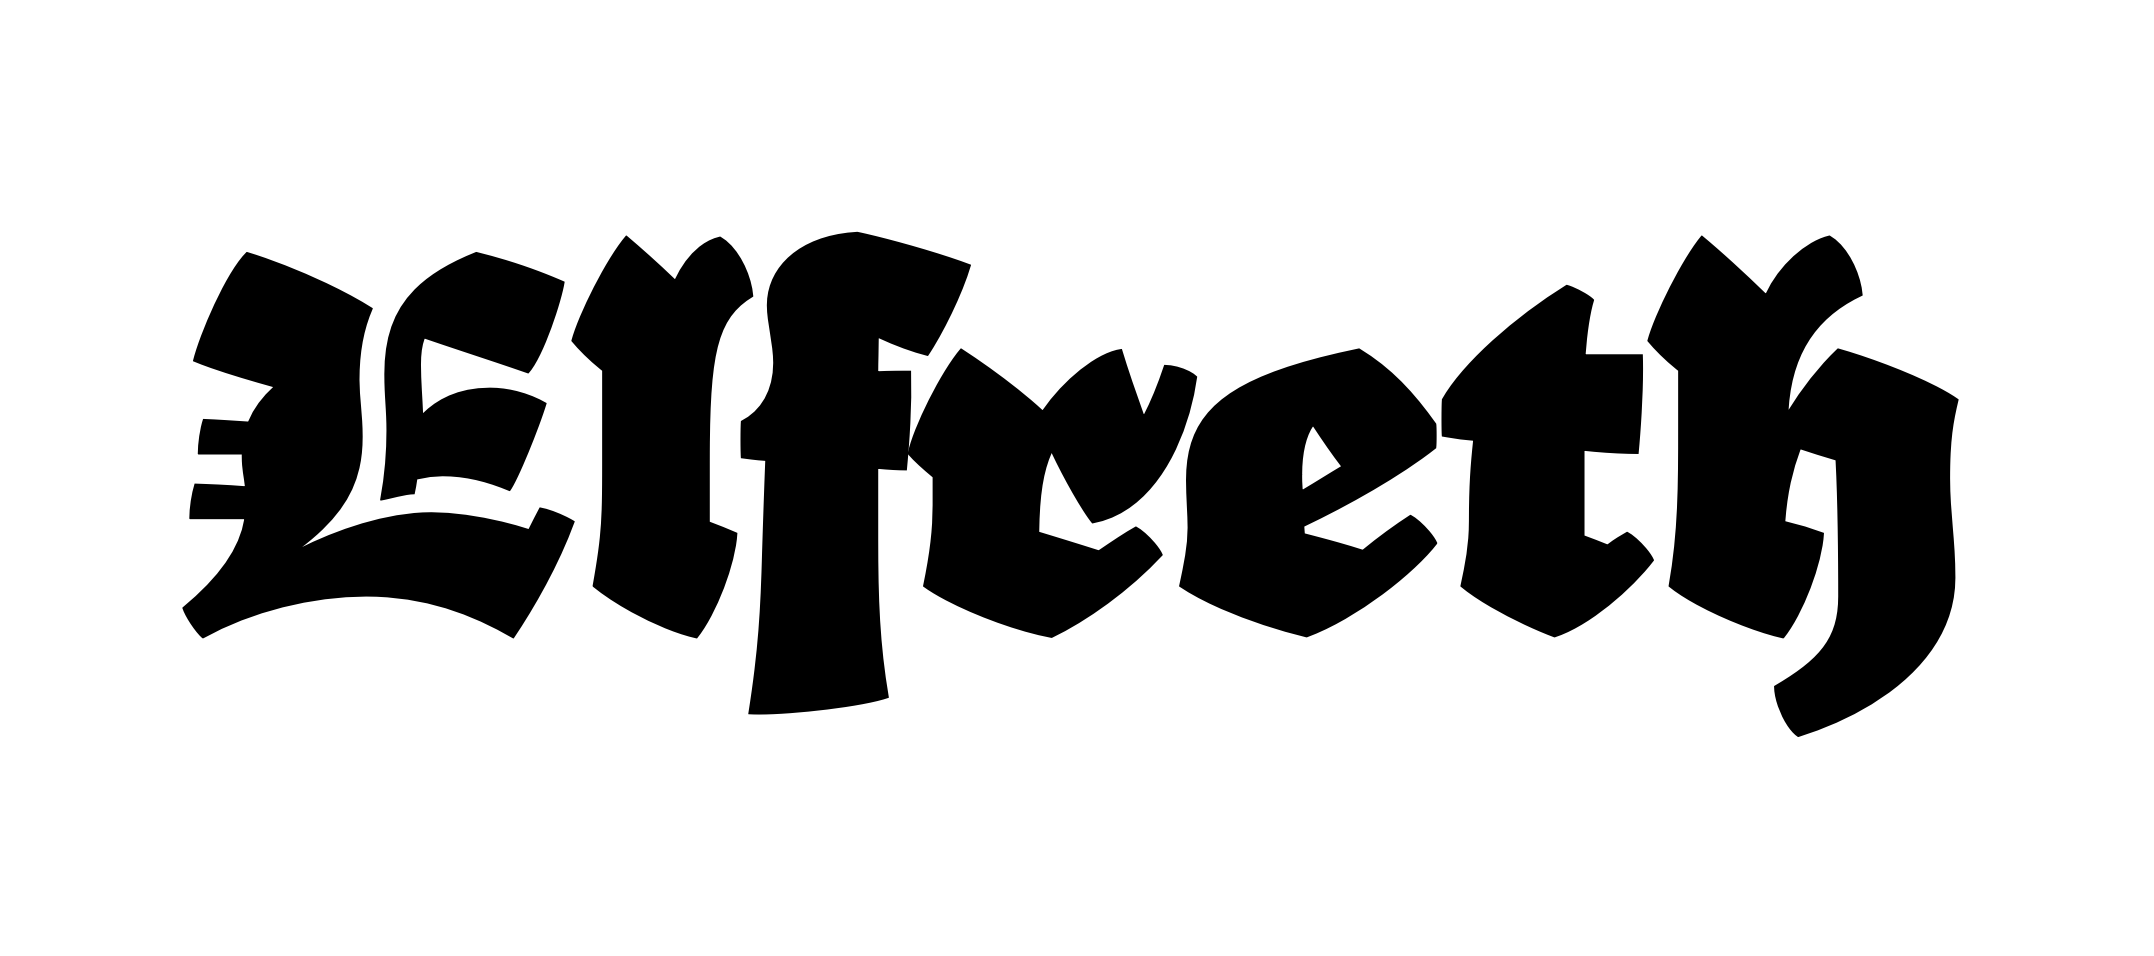 Elfreth by JTD type